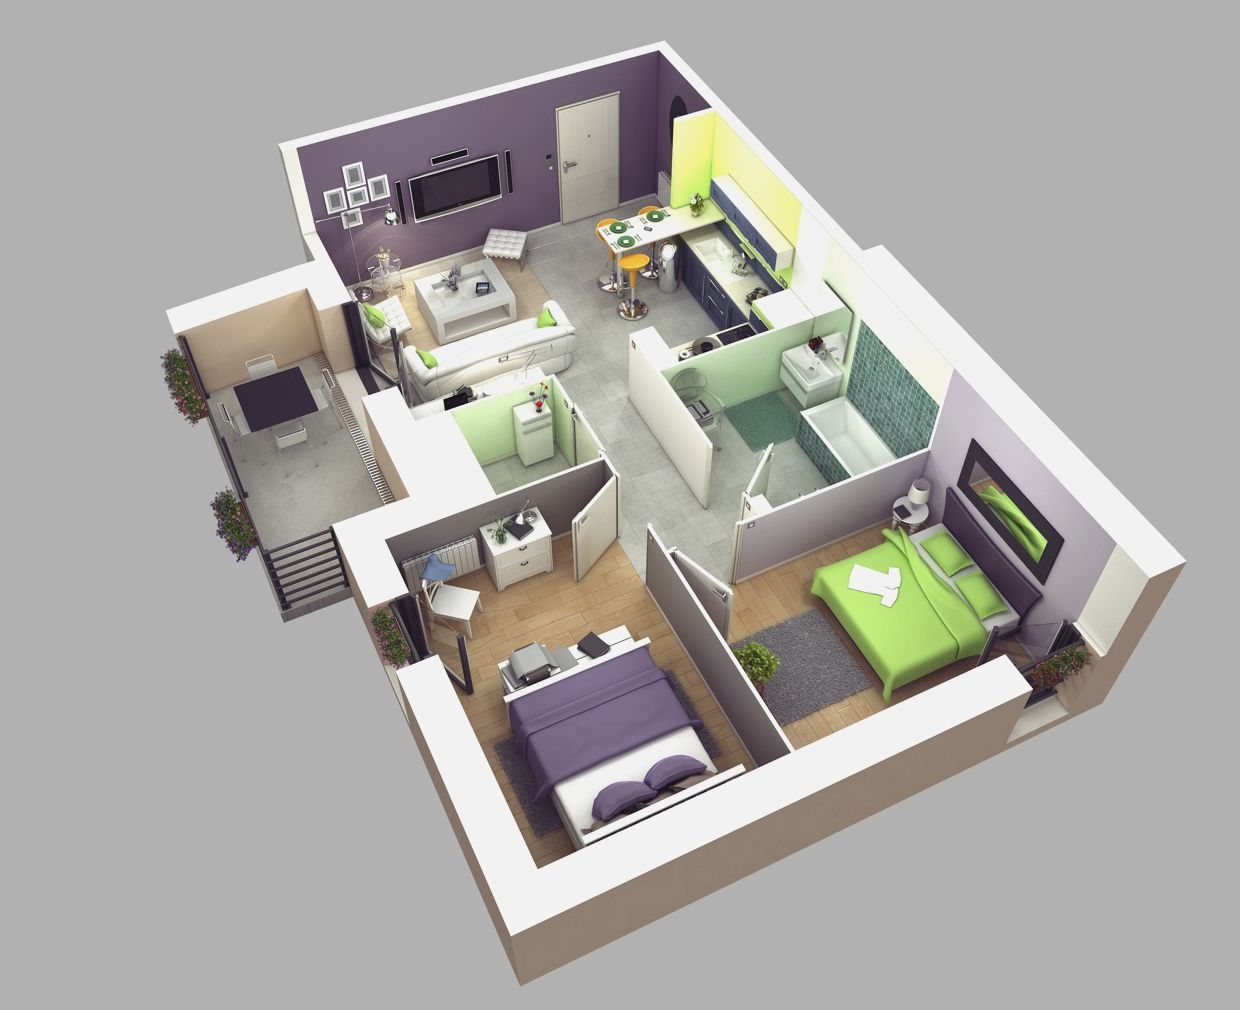 3 bedroom house designs 3d   Buscar con Google   Home   Pinterest     3 bedroom house designs 3d   Buscar con Google